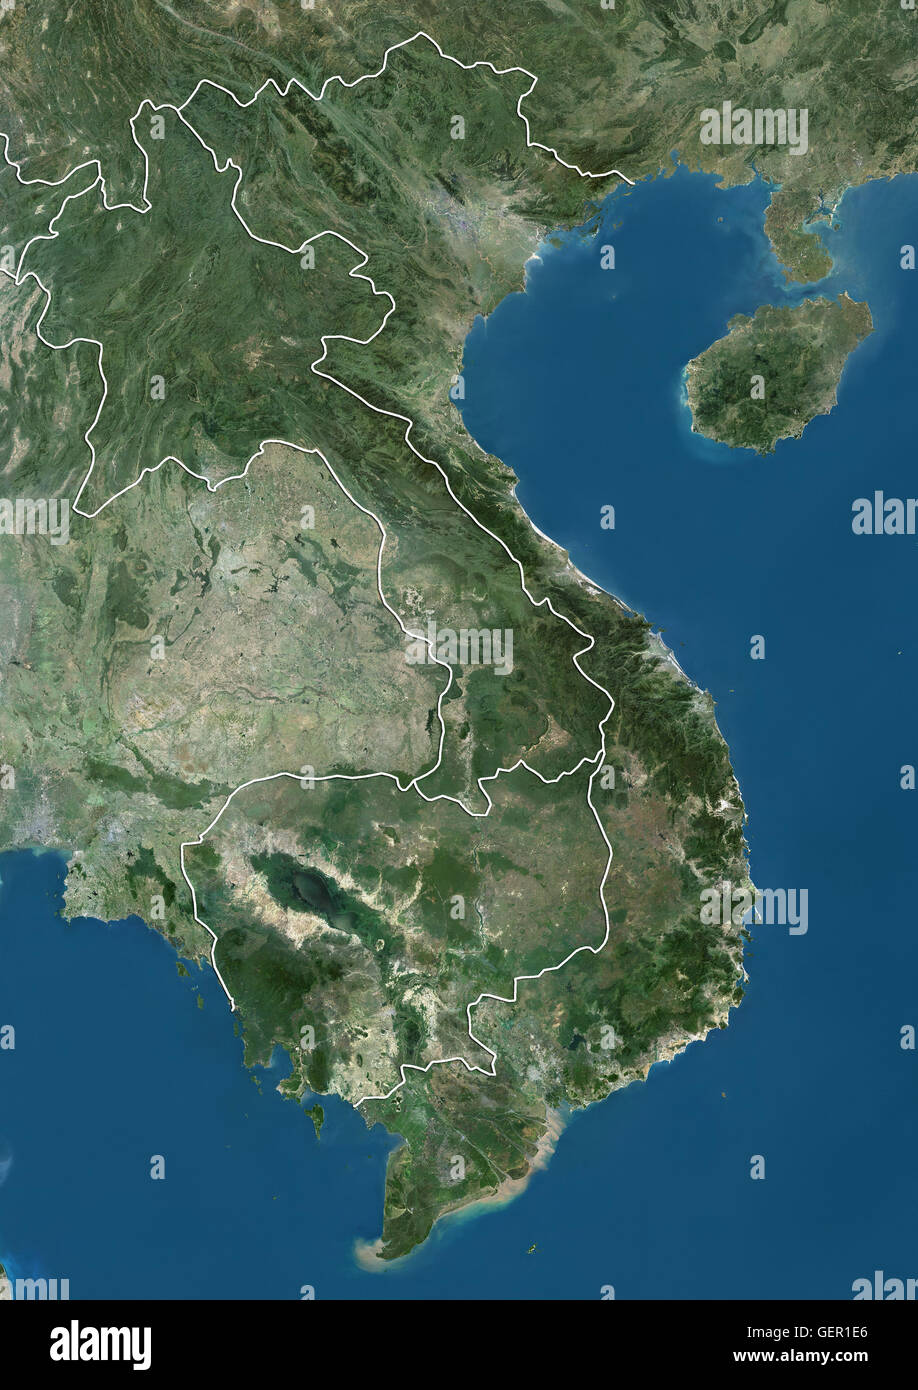 Satellite view vietnam stock photos satellite view vietnam stock satellite view of vietnam cambodia and laos with country boundaries this image publicscrutiny Gallery